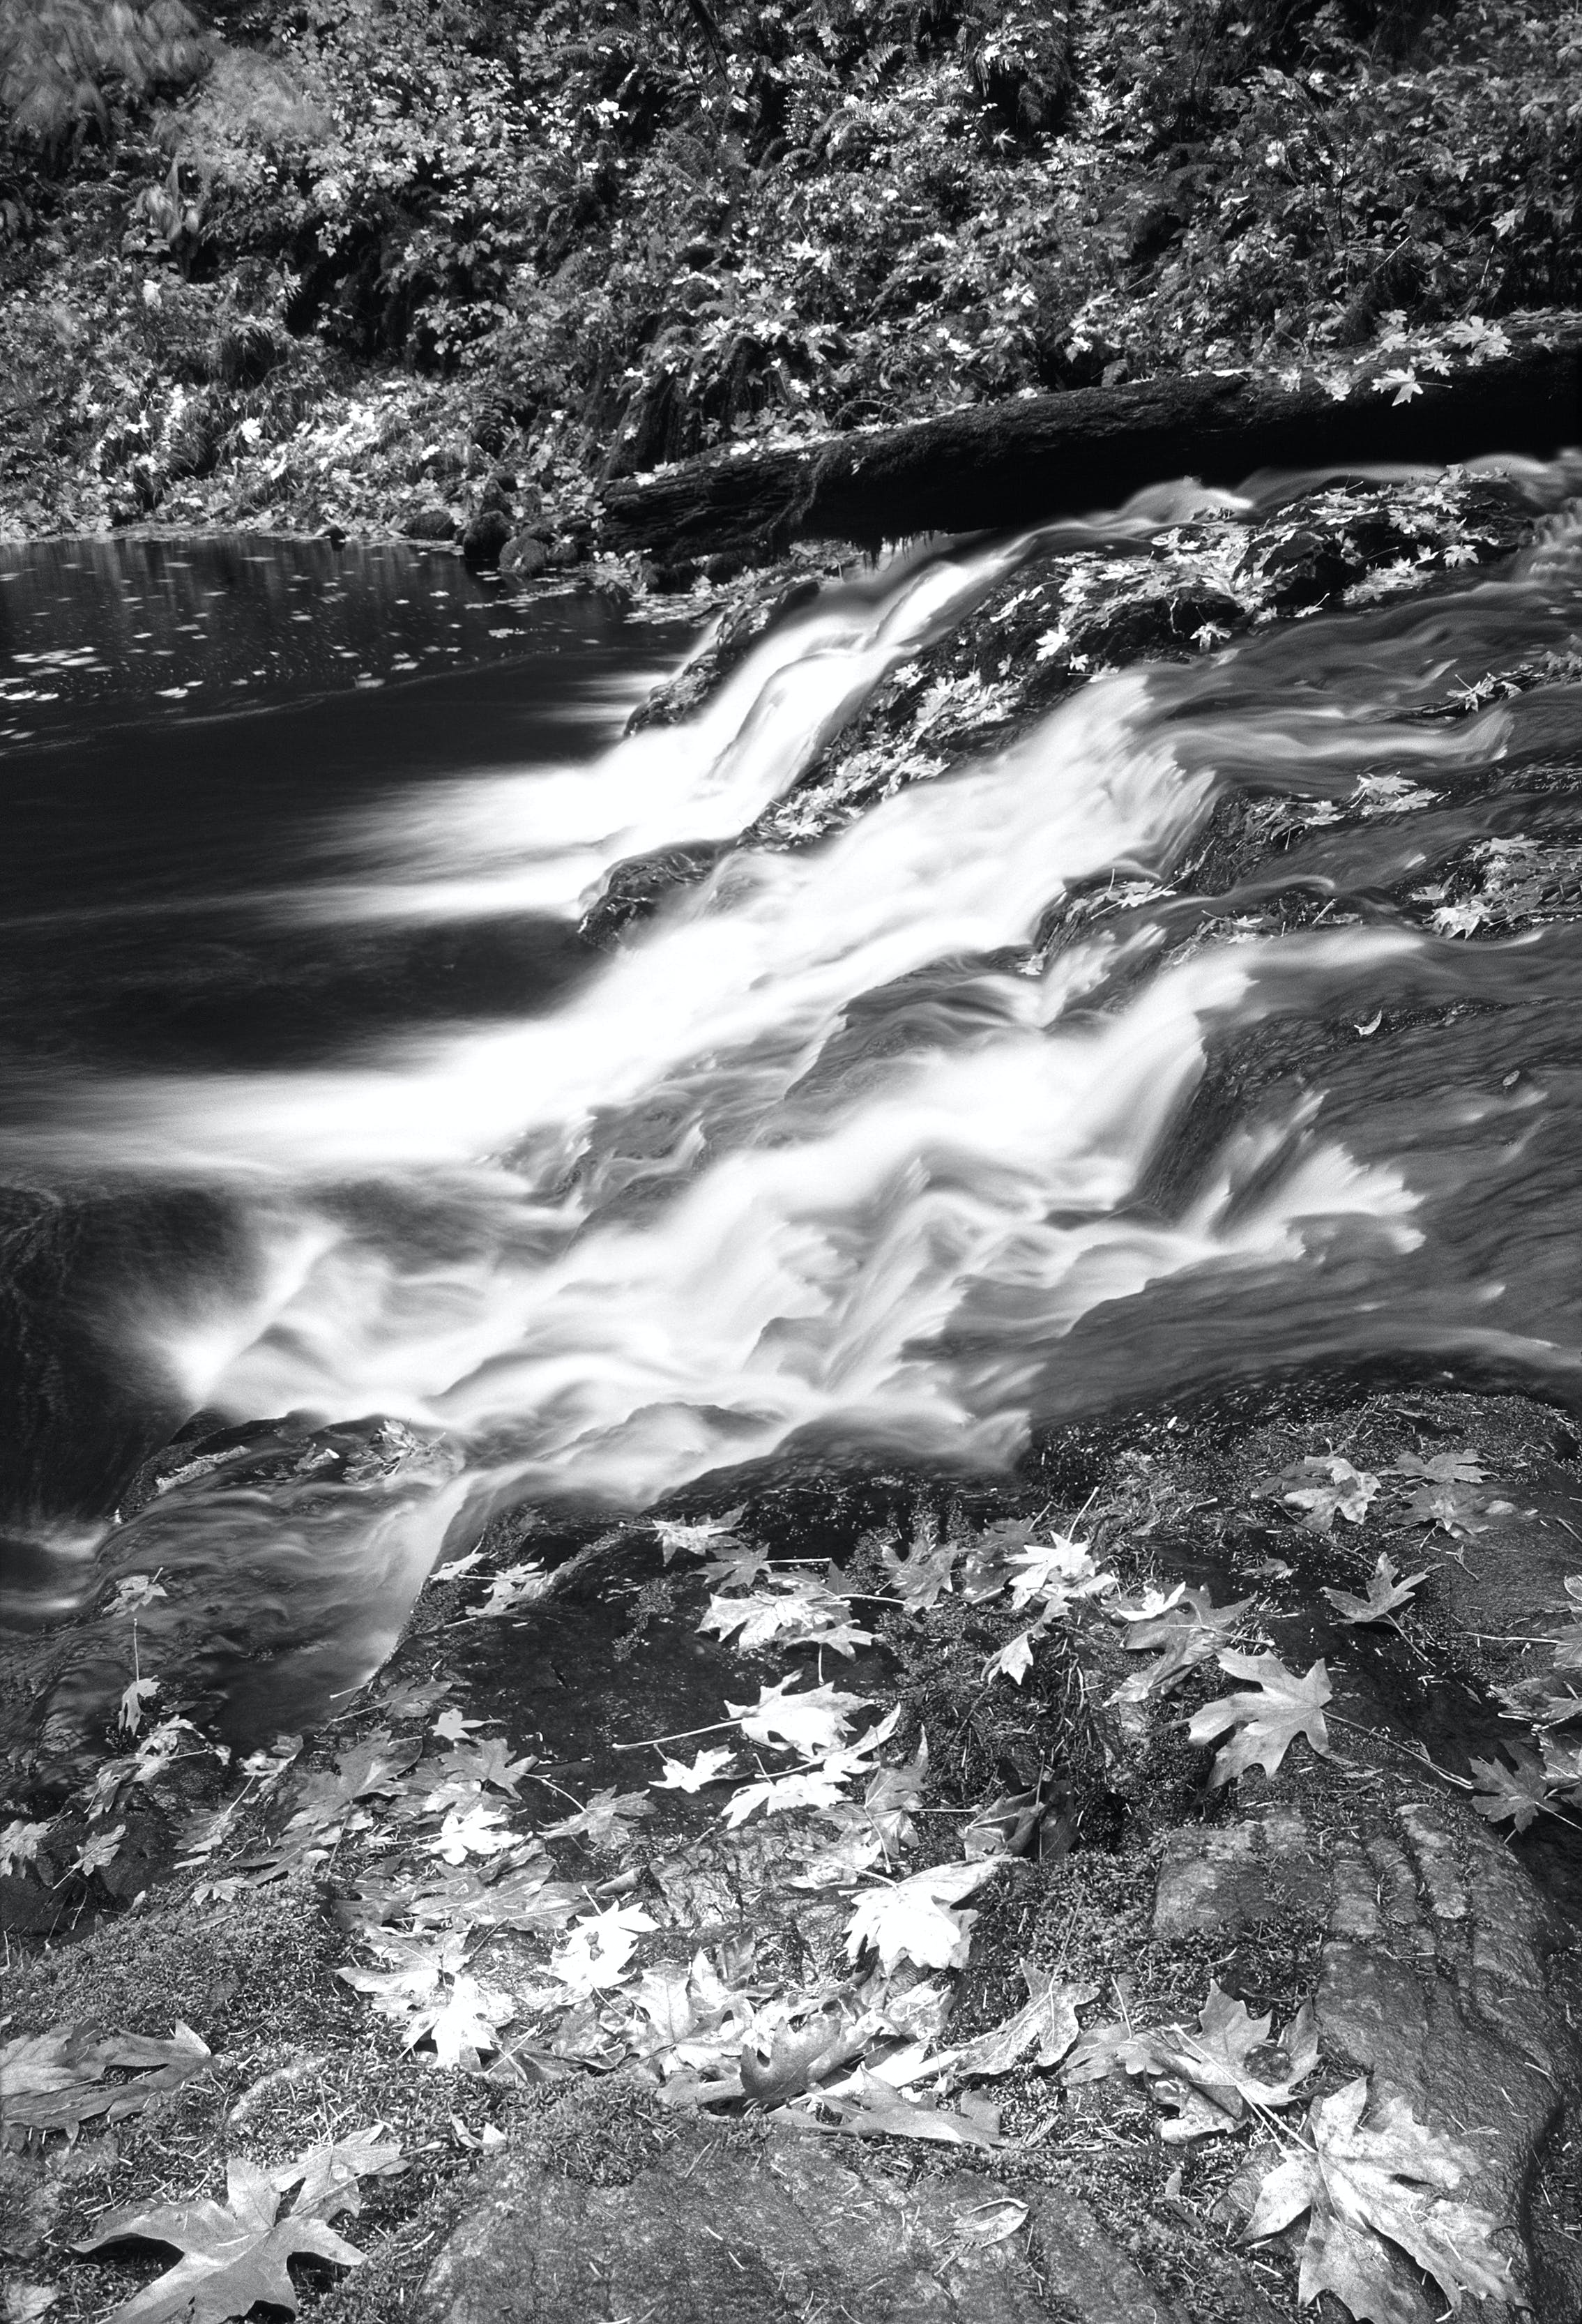 Grayscale Photography of Falling Leaves Near Running Water